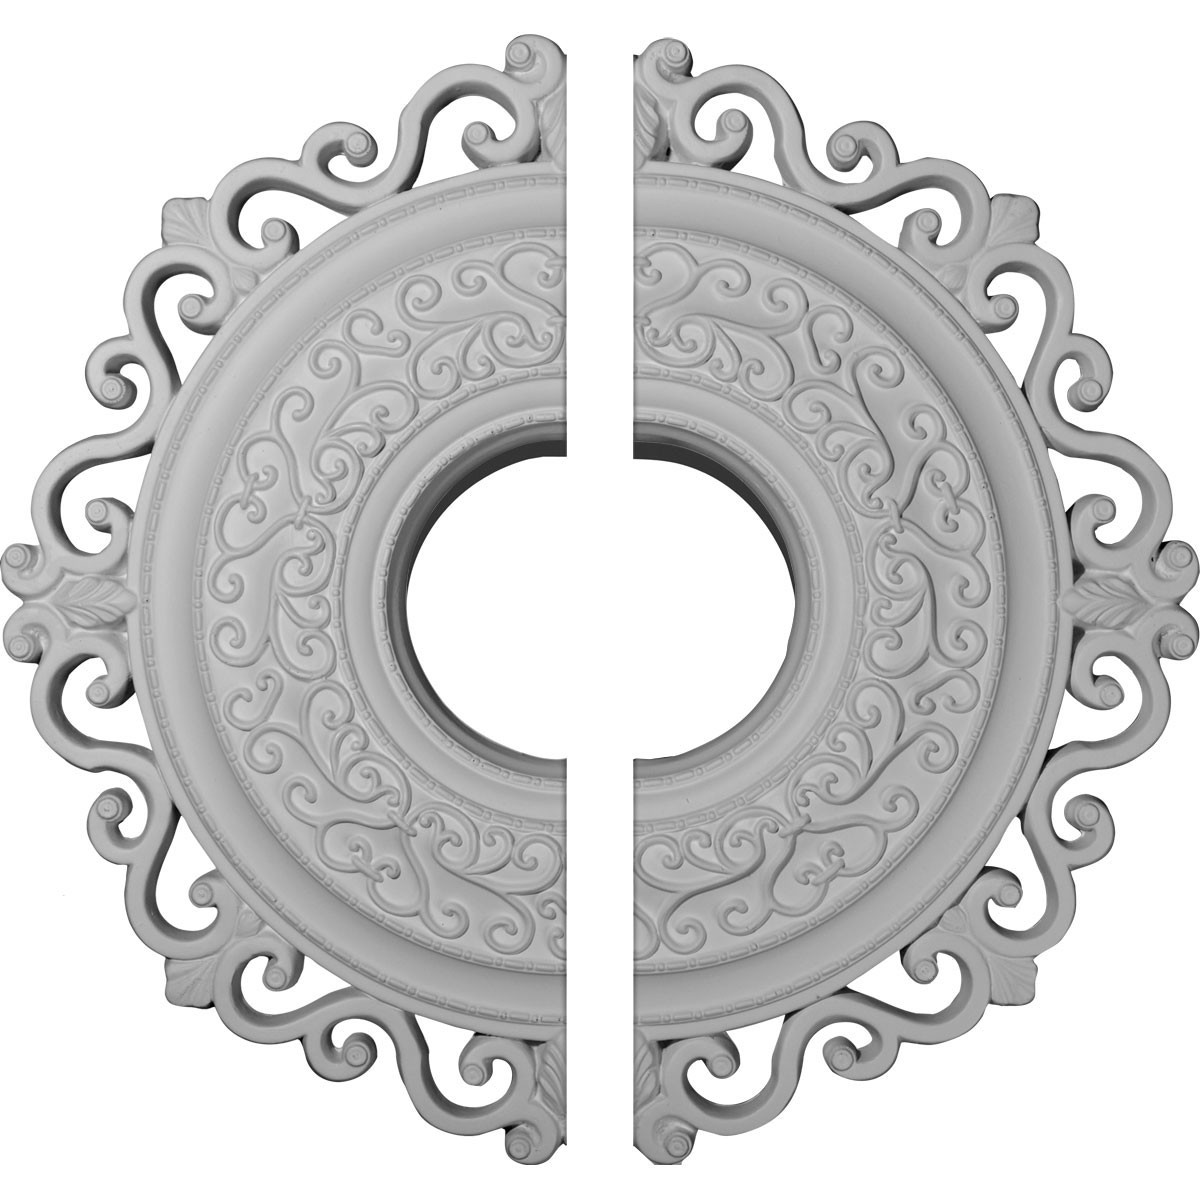 """EM-CM22OR2 - 22""""OD x 6 1/4""""ID x 1 3/4""""P Orrington Ceiling Medallion, Two Piece (Fits Canopies up to 6 1/4"""")"""